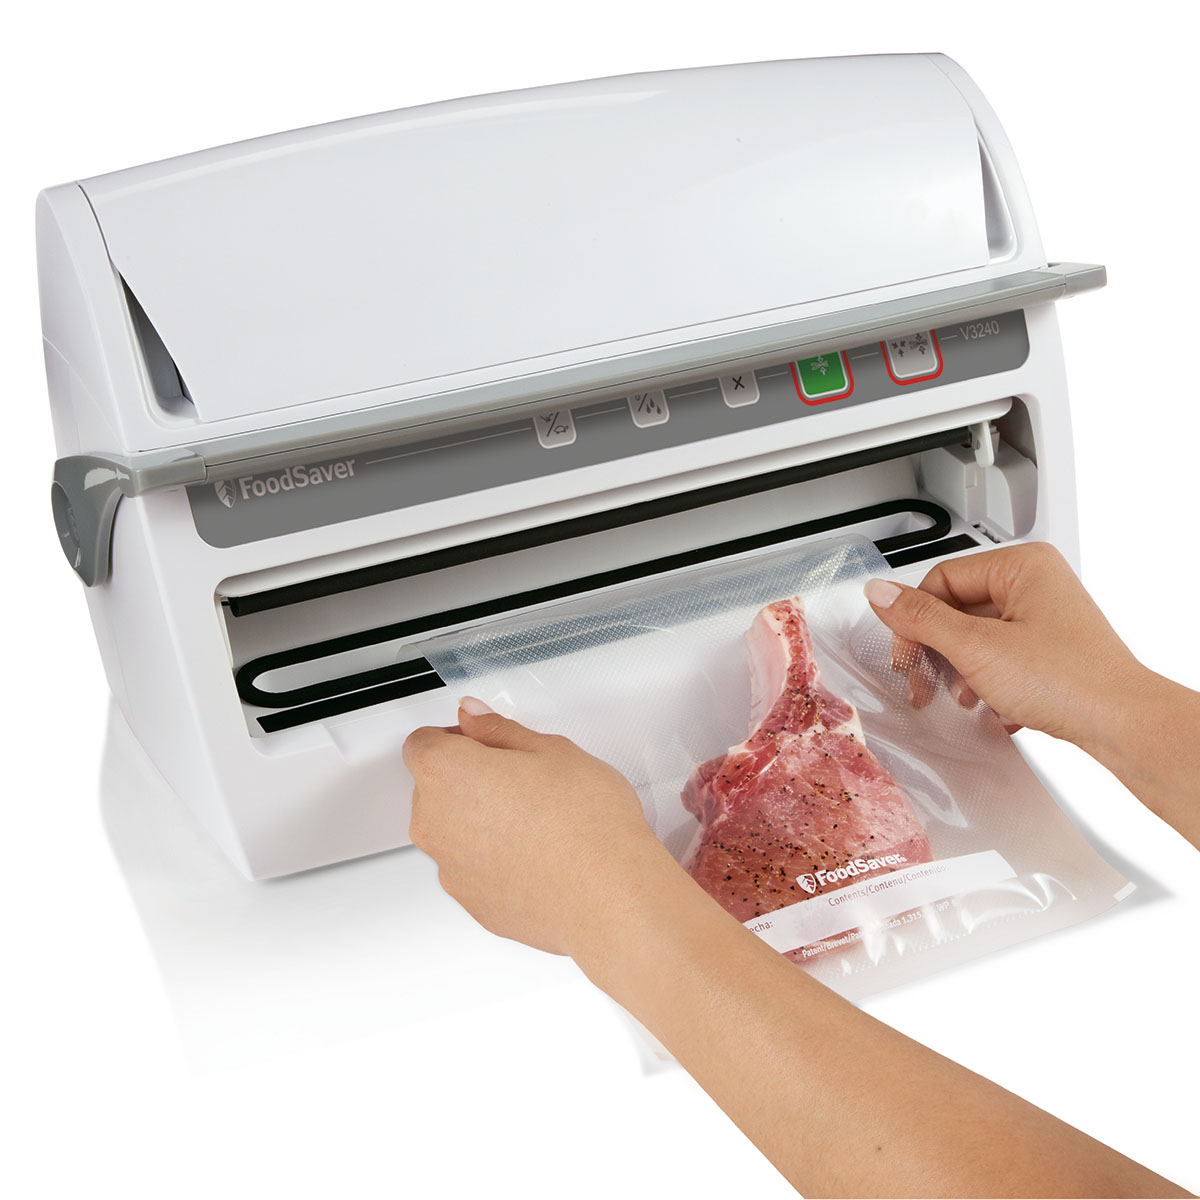 Foodsaver Vacuum Food Sealer Reviews